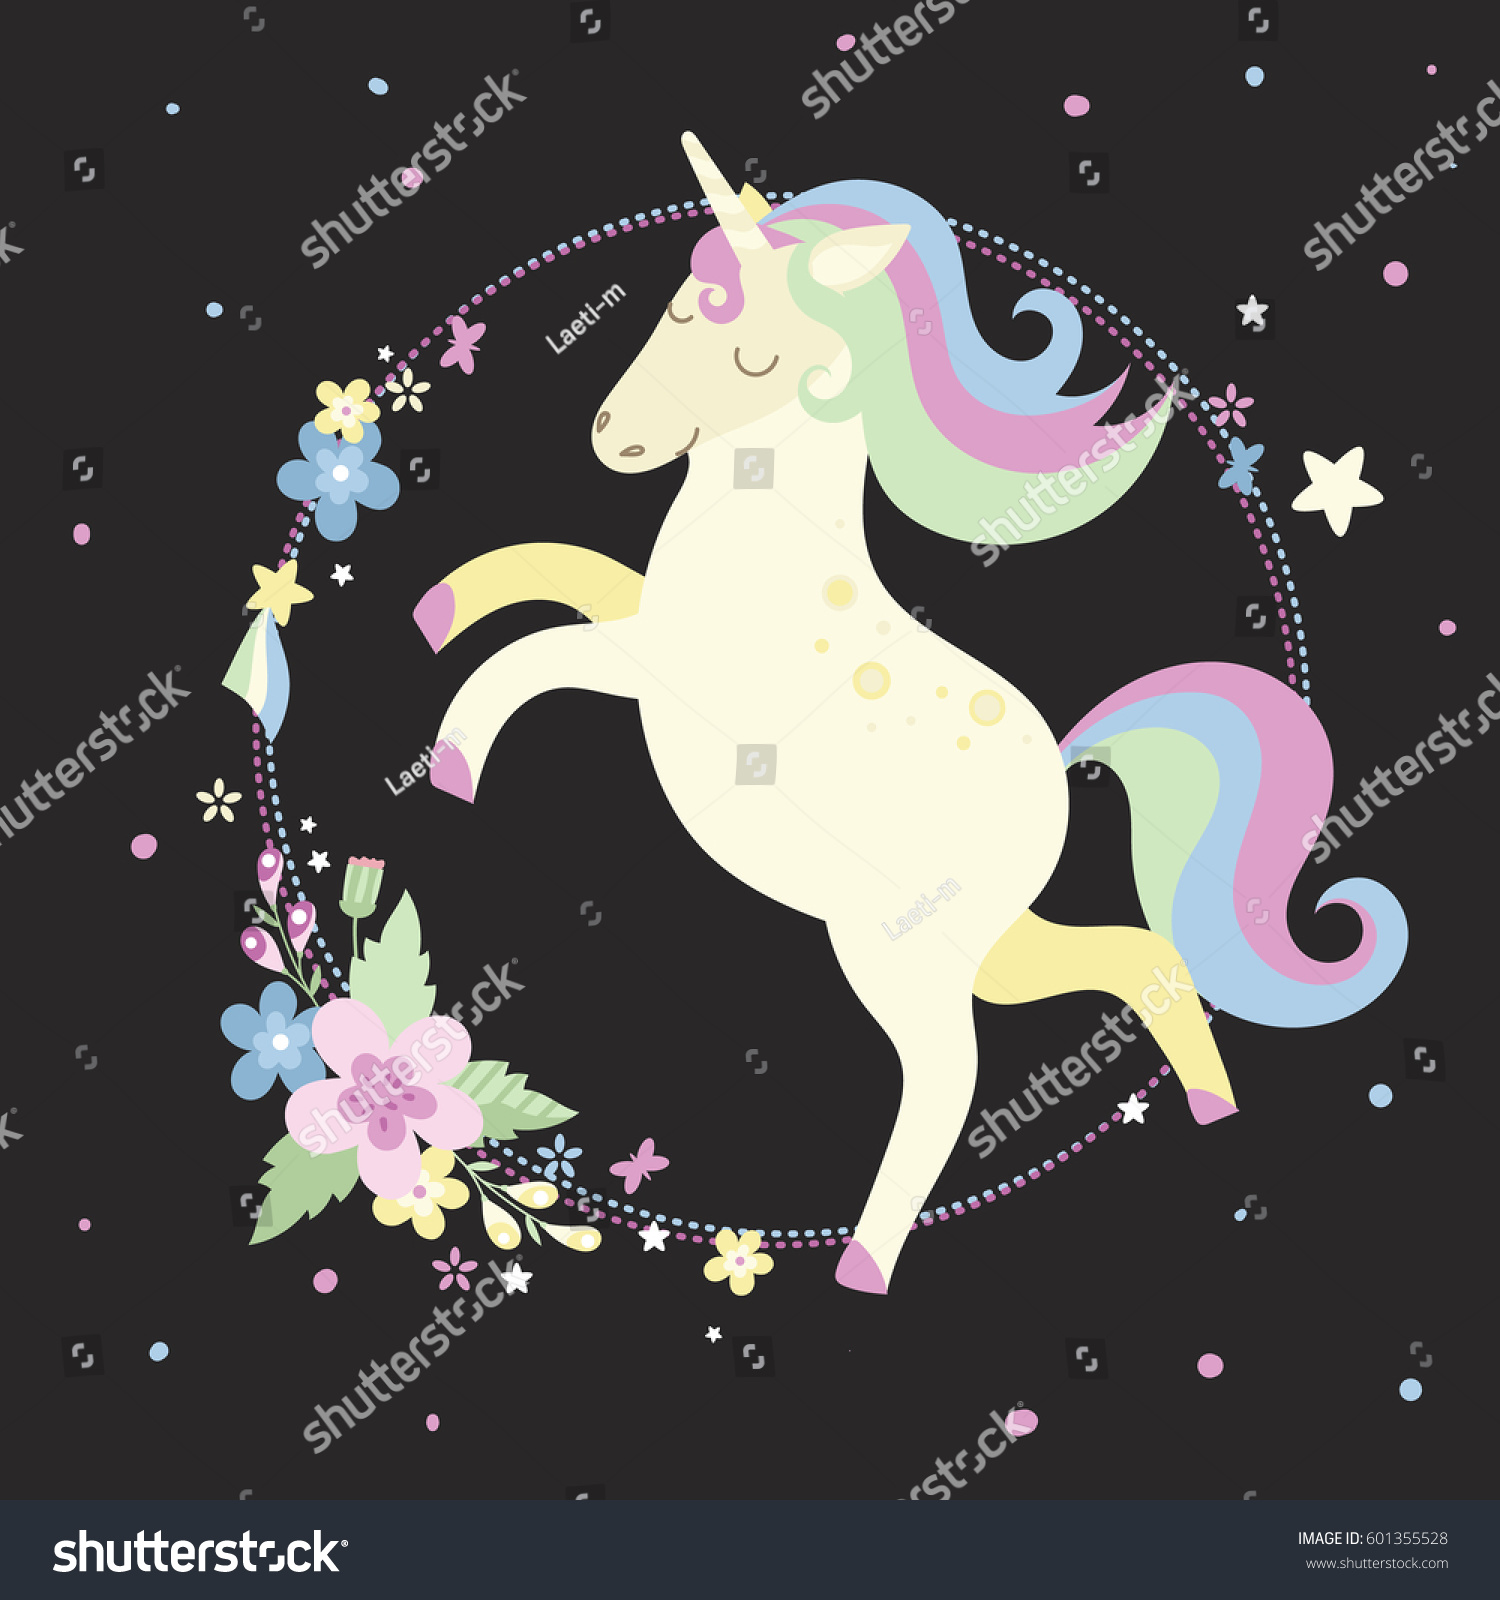 Vector round frame with pink flowers on white background in pastel - Cute Unicorn With Flowers Stars And Round Frame In Pastel Colors On A Black Background